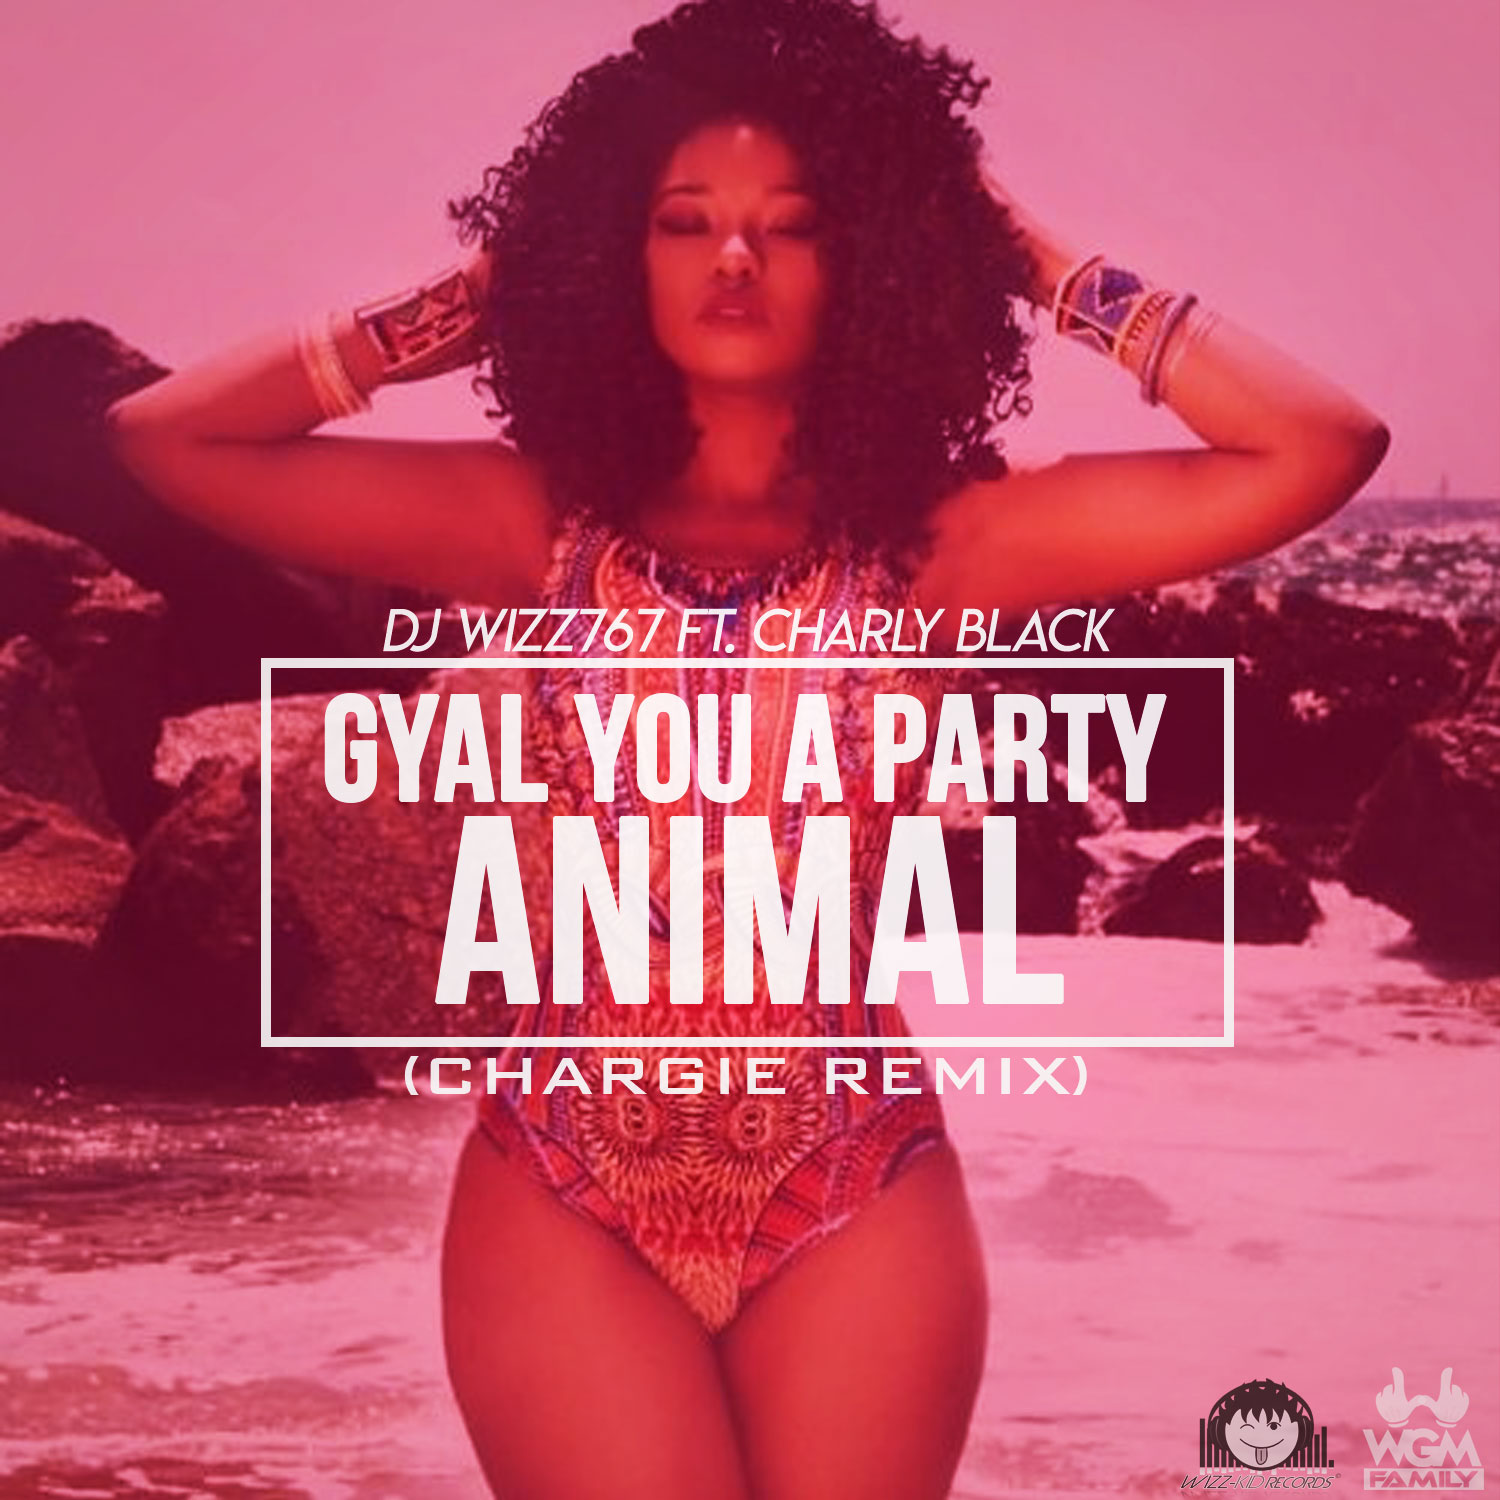 You are currently viewing Dj Wizz767 Ft. Charly Black – Gyal You A Party Animal (Chargie Remix)